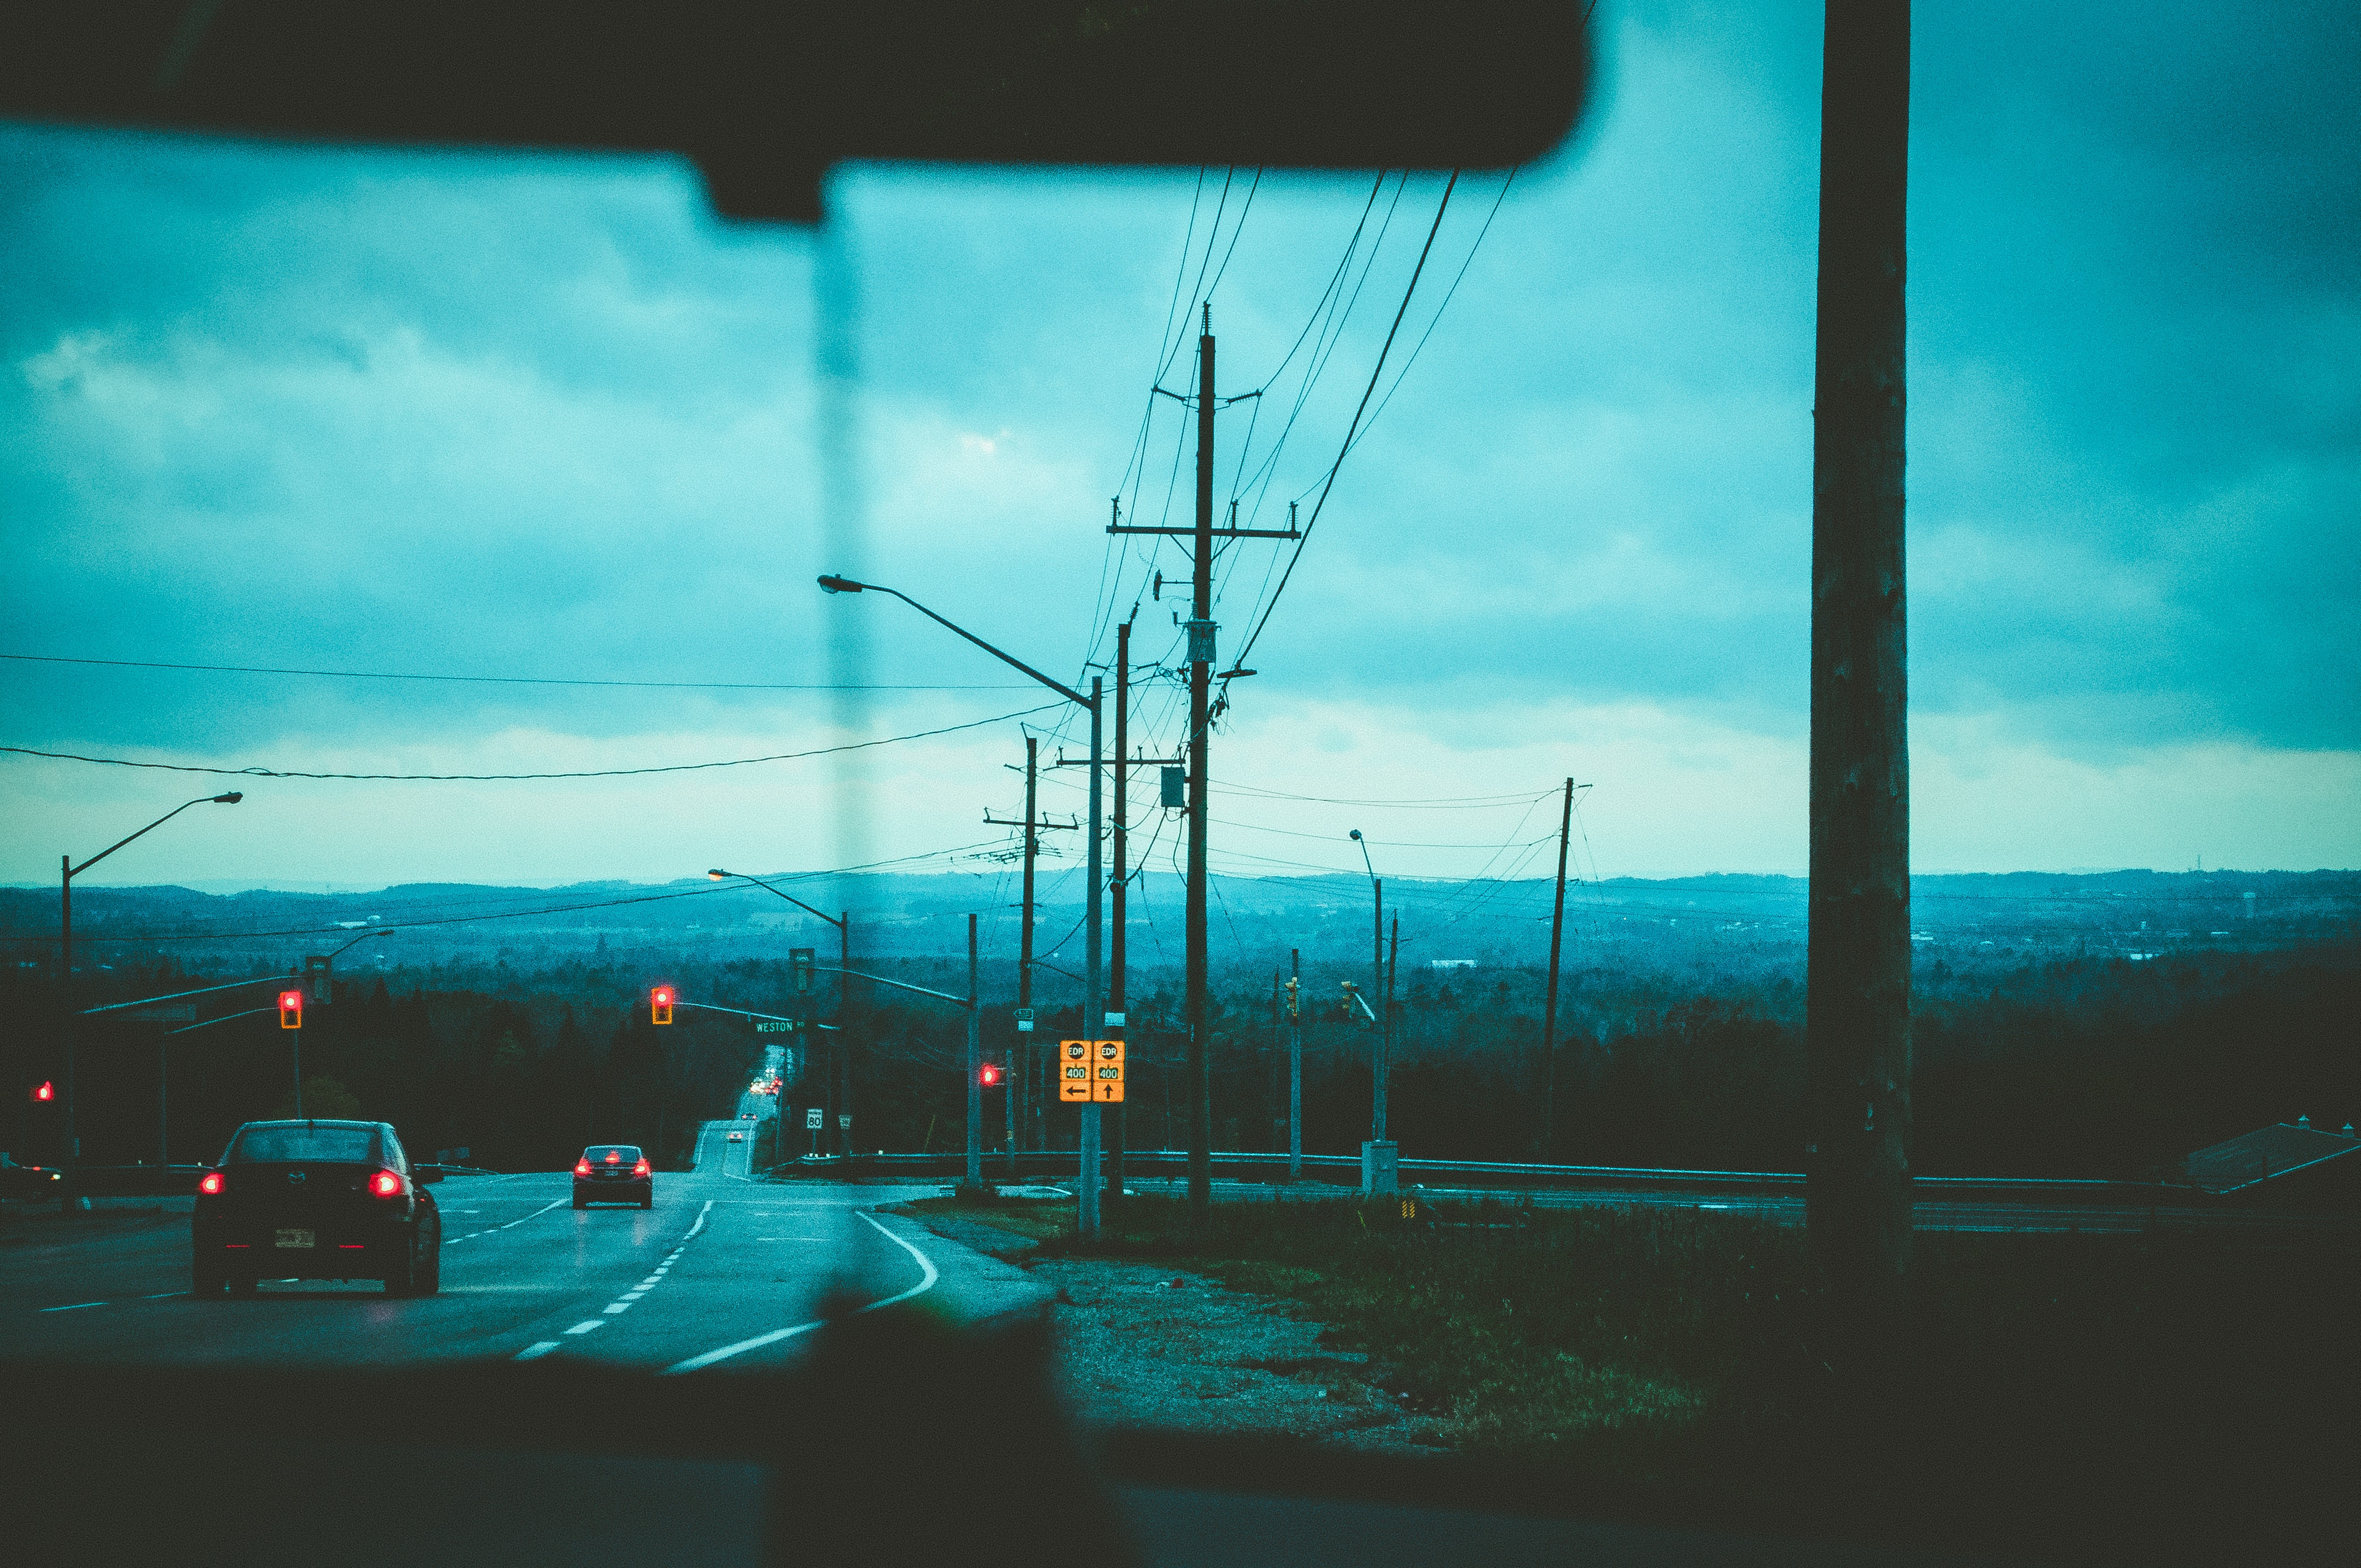 Road With Light Posts from Inside Car's Point of View, Cars, Street, Water, Vehicles, HQ Photo